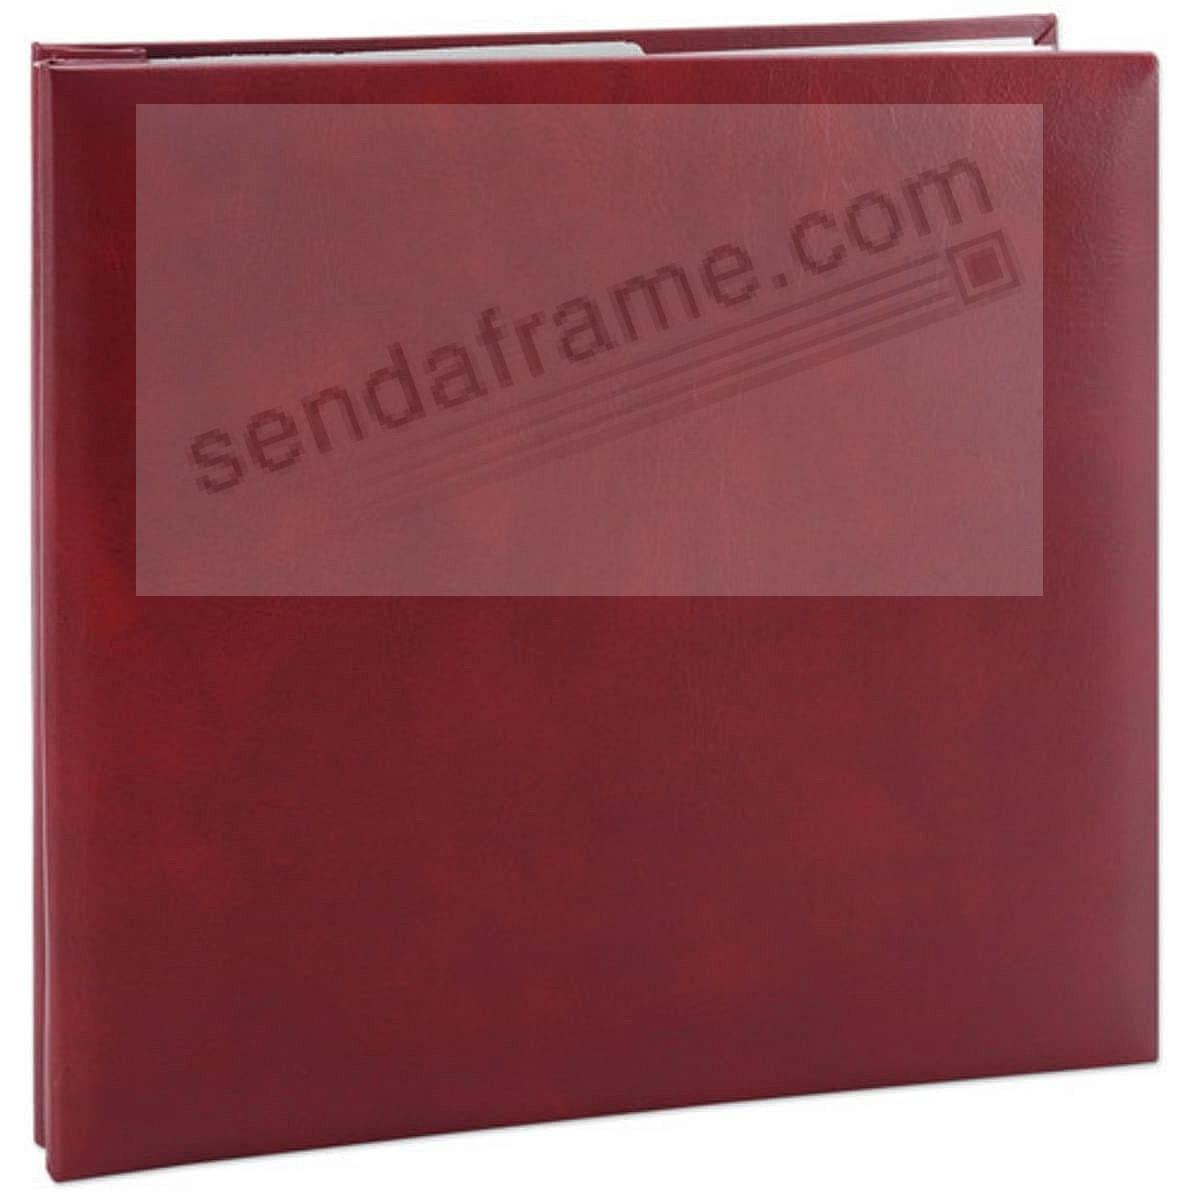 Burgundy E-Z LOAD 8x8 Scrapbook by Pioneer®